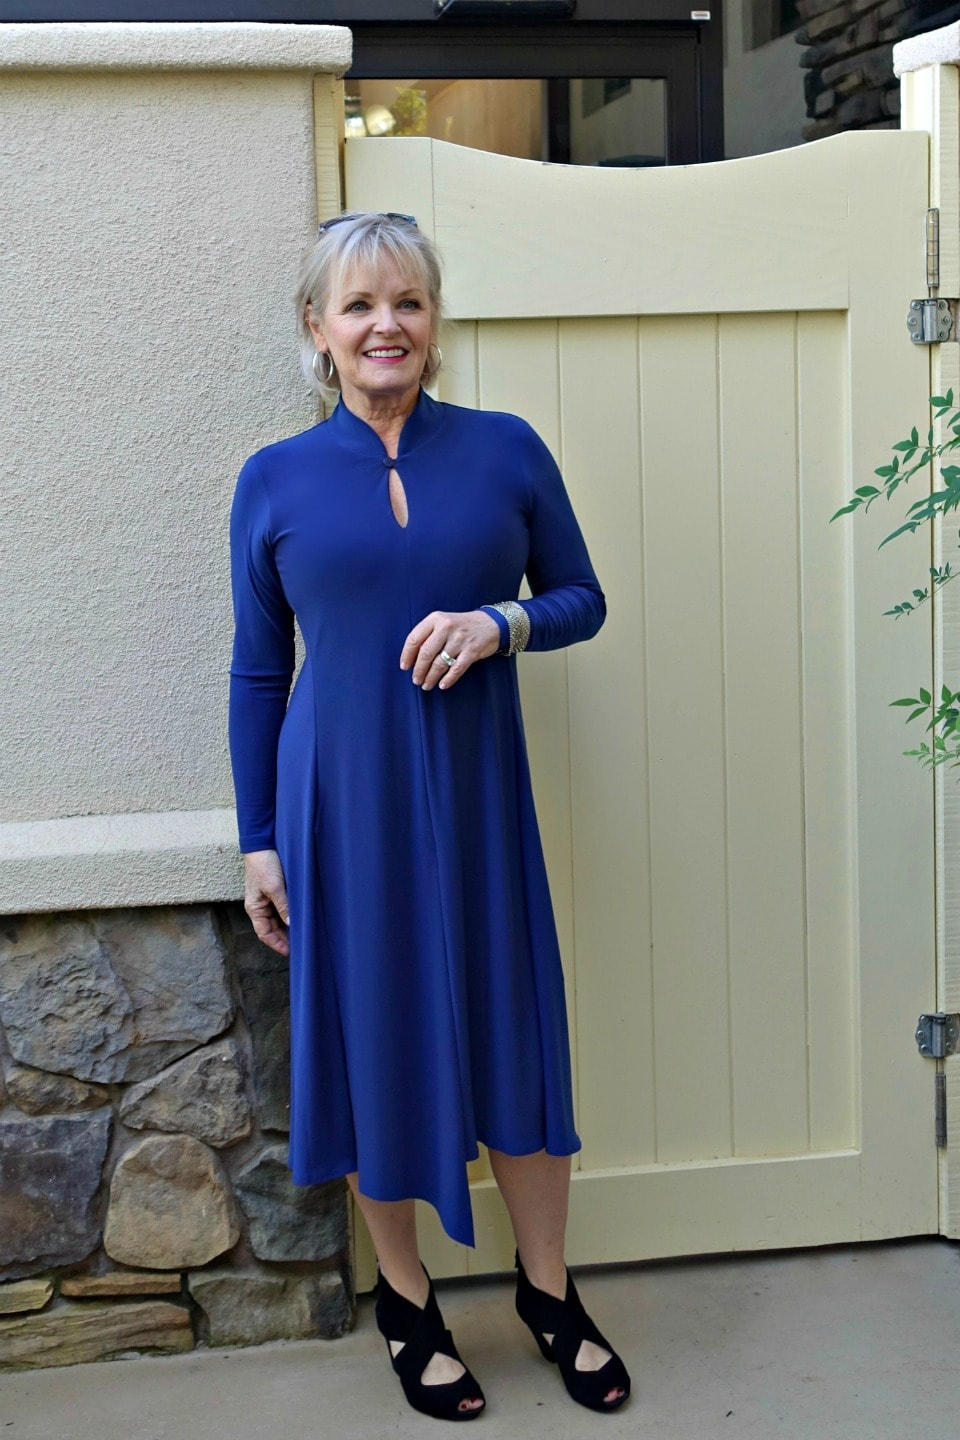 Jennifer Connolly or A Well Styled Life wearing Isla dress from Artful Home